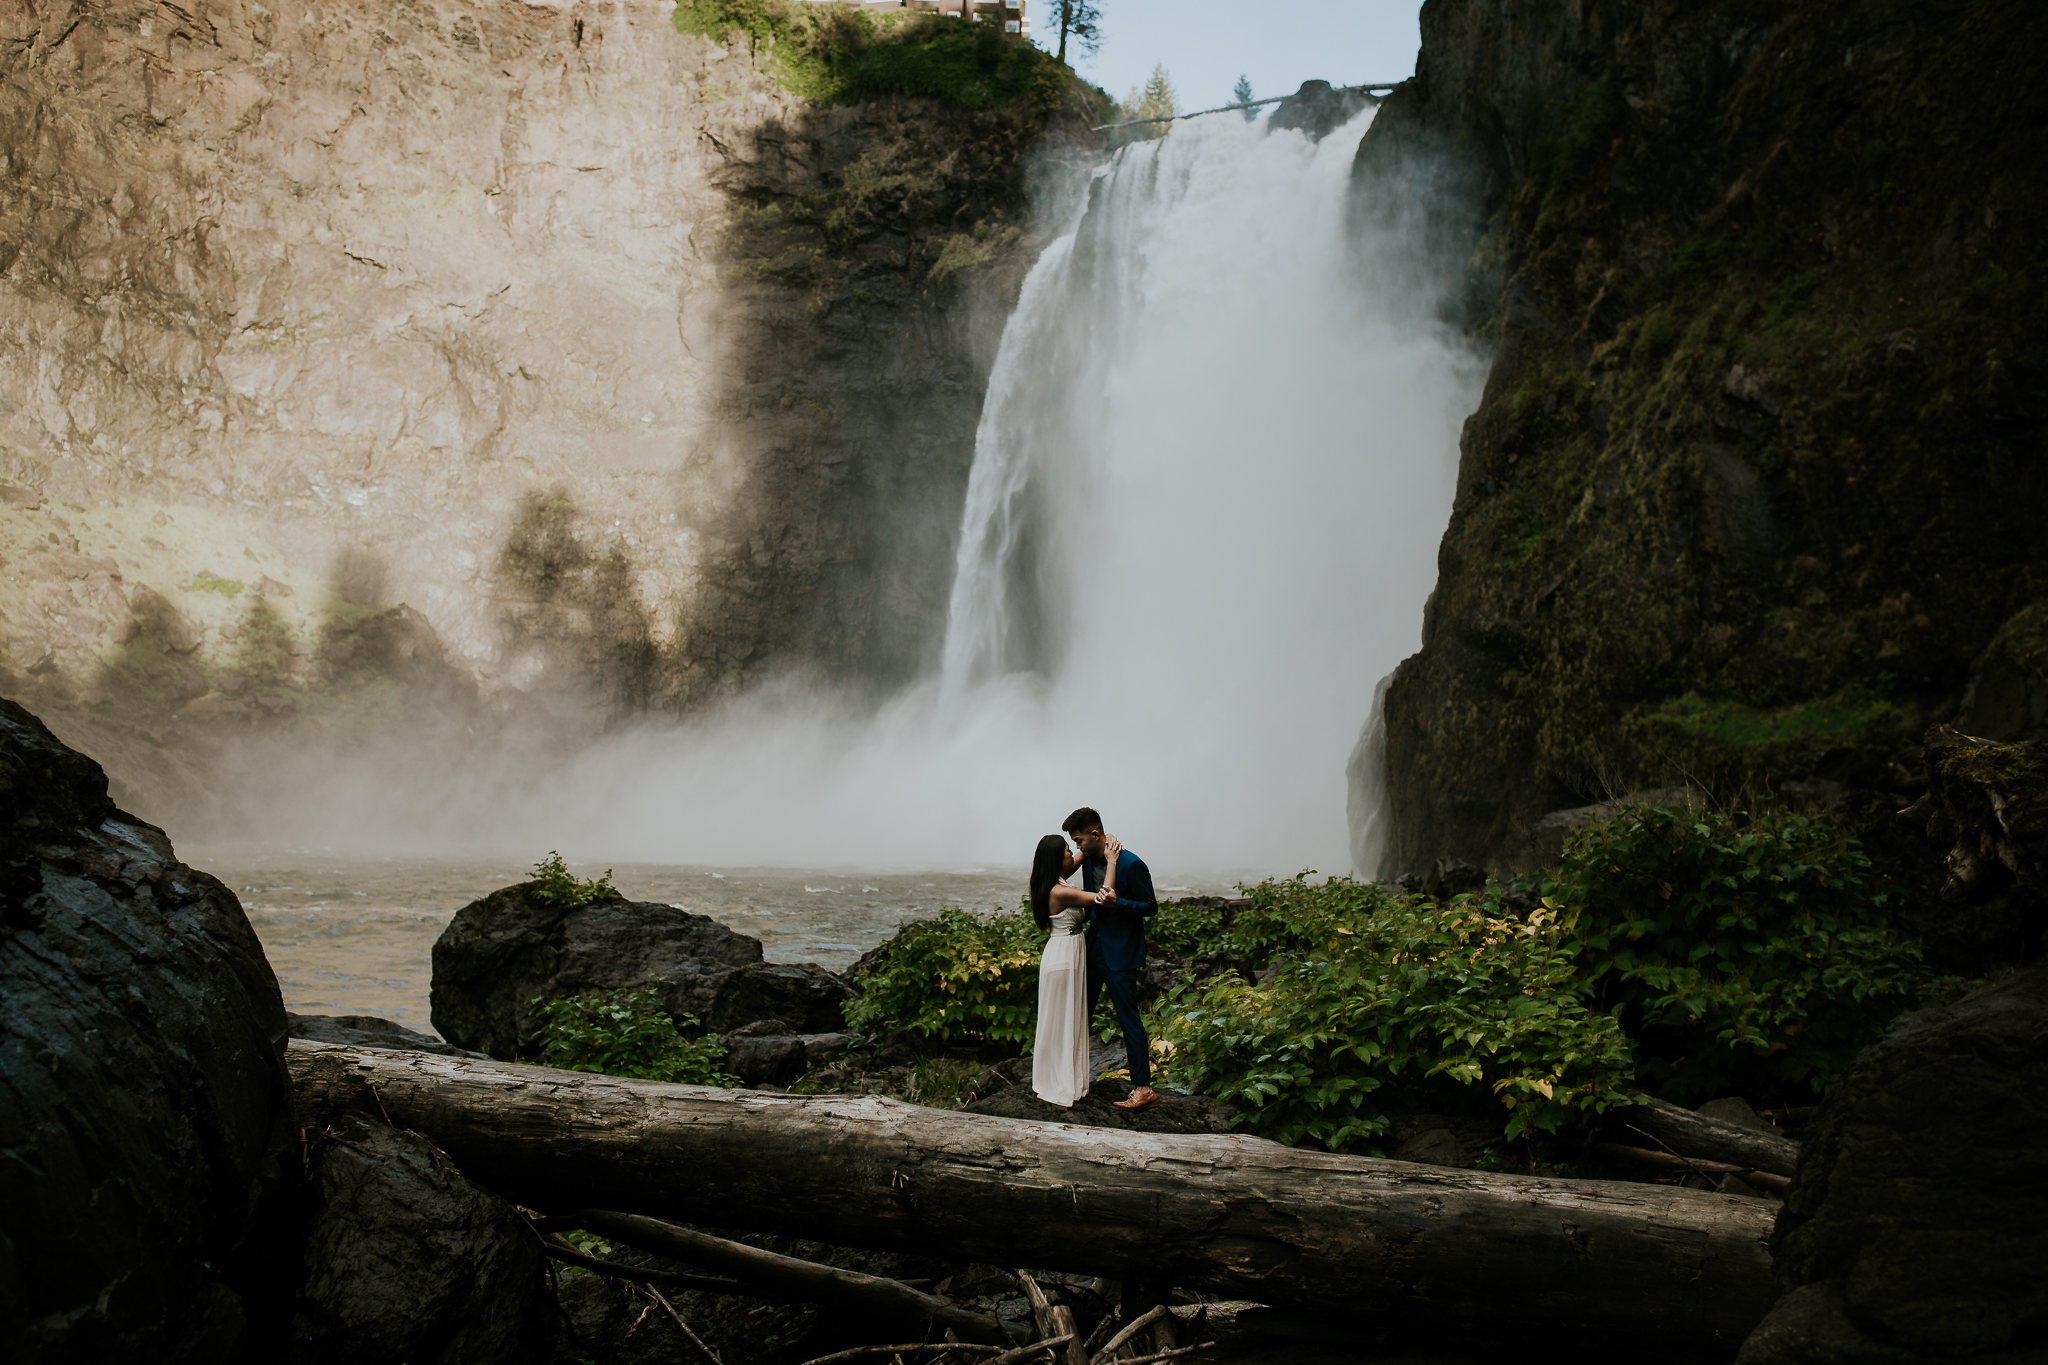 Bride and groom eloping at the base of Snoqualmie Falls